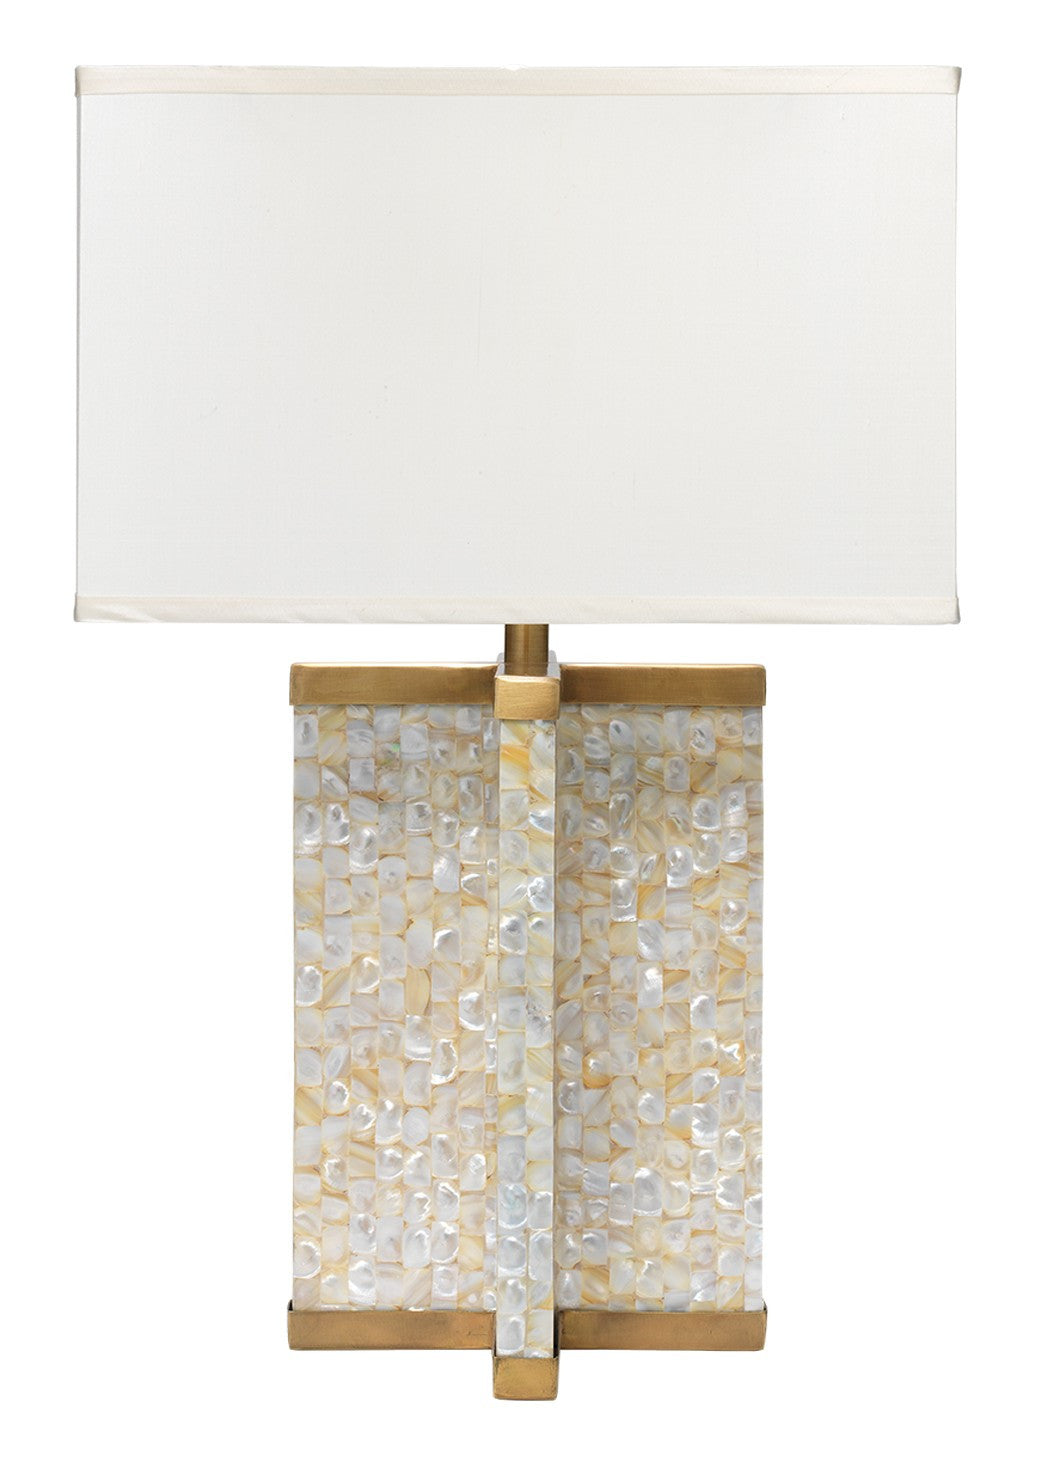 Axis table lamp jamie young luxe home philadelphia axis table lamp jamie young mozeypictures Image collections